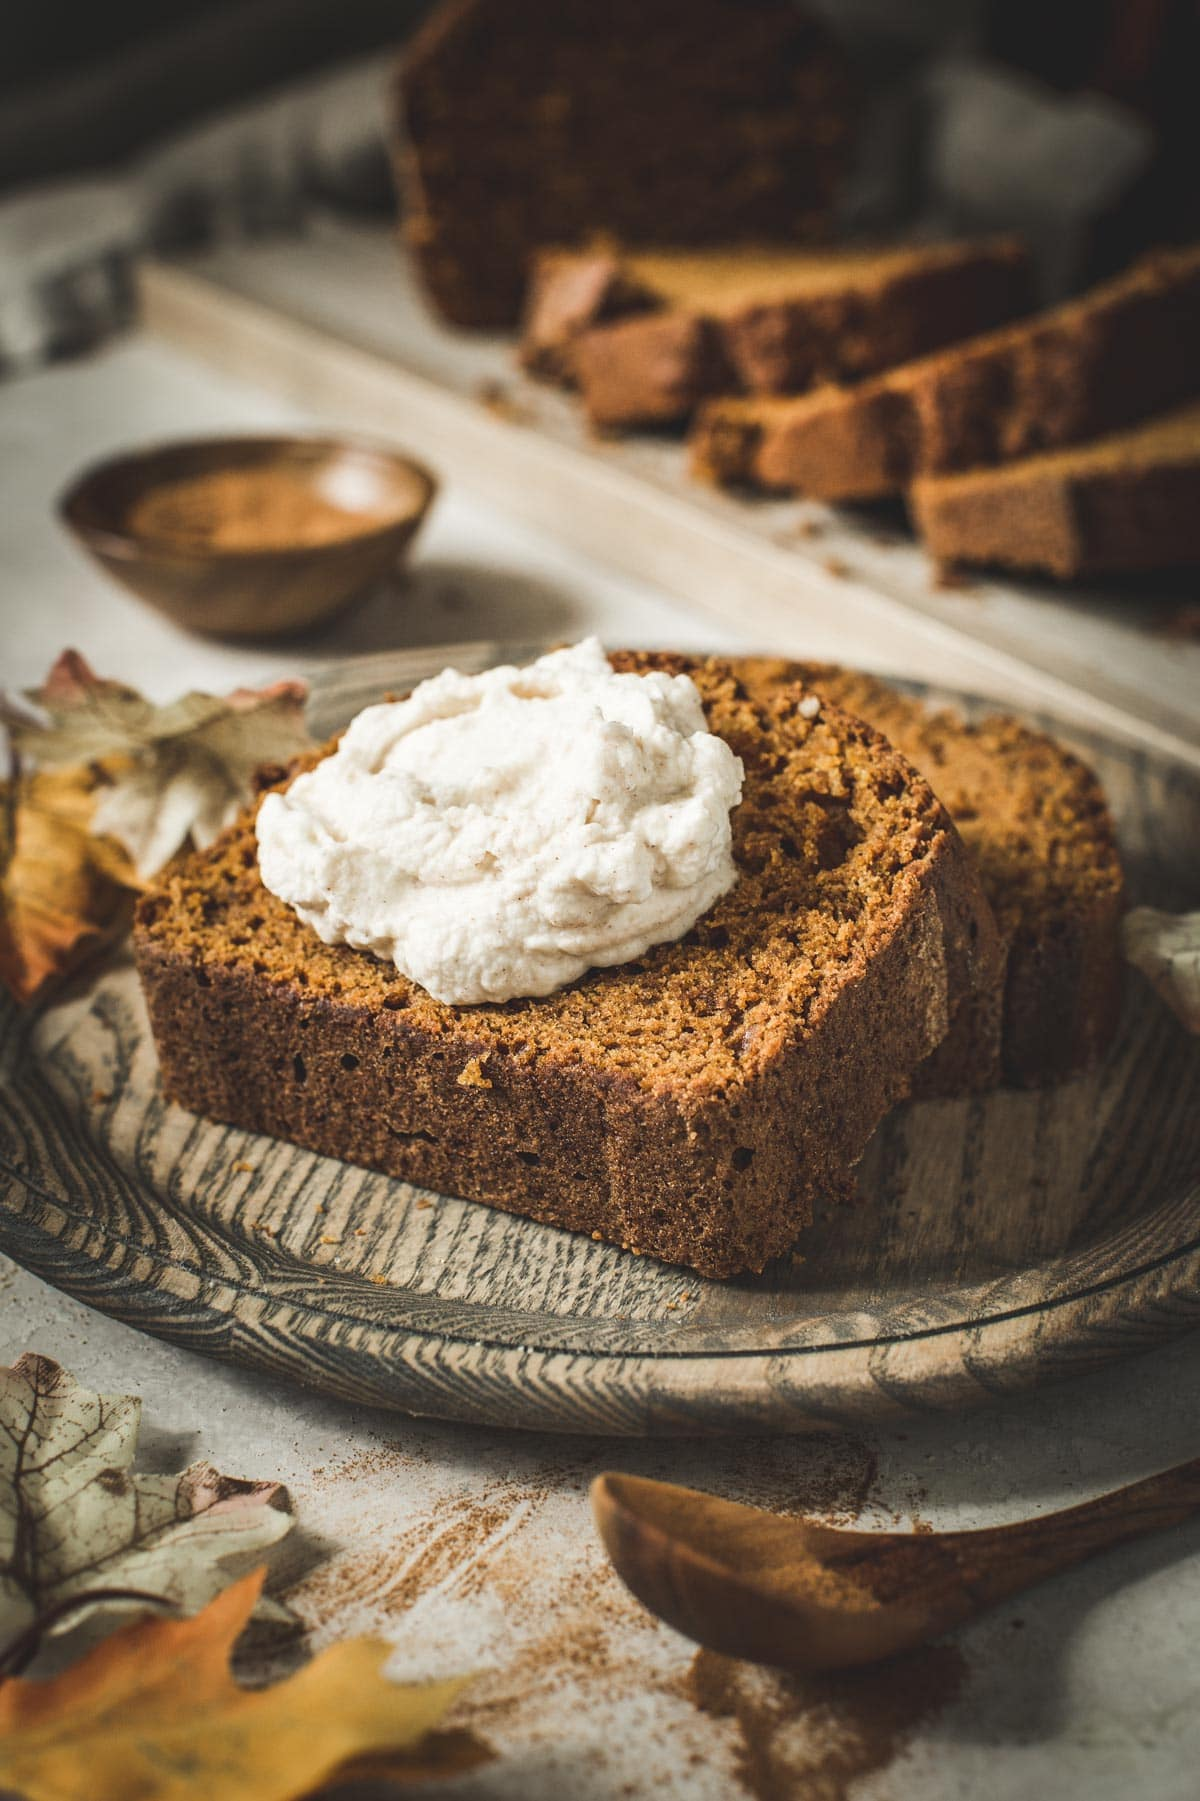 Slice of pumpkin bread topped with whipped cream on a wooden plate.